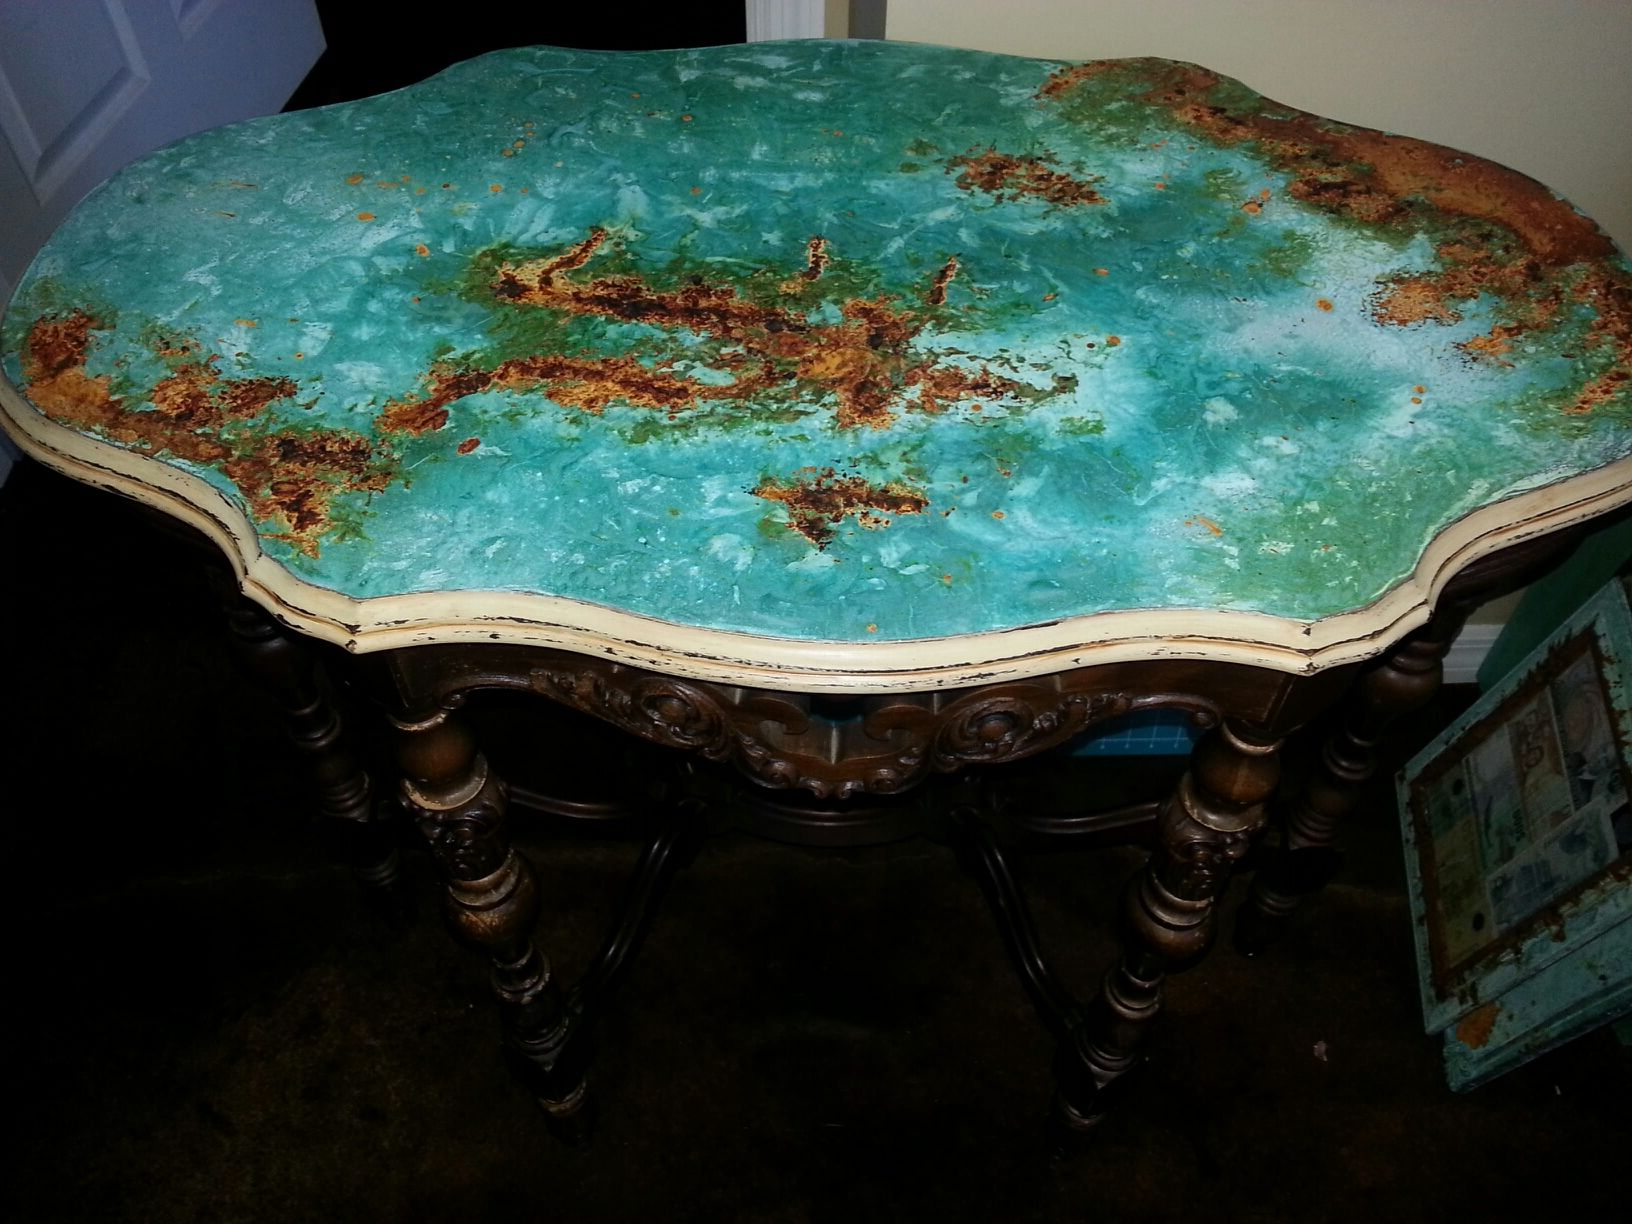 Copper/ Rust Patina Table Top With Modern Master Metal Effects Inside Mix Patina Metal Frame Console Tables (View 4 of 20)